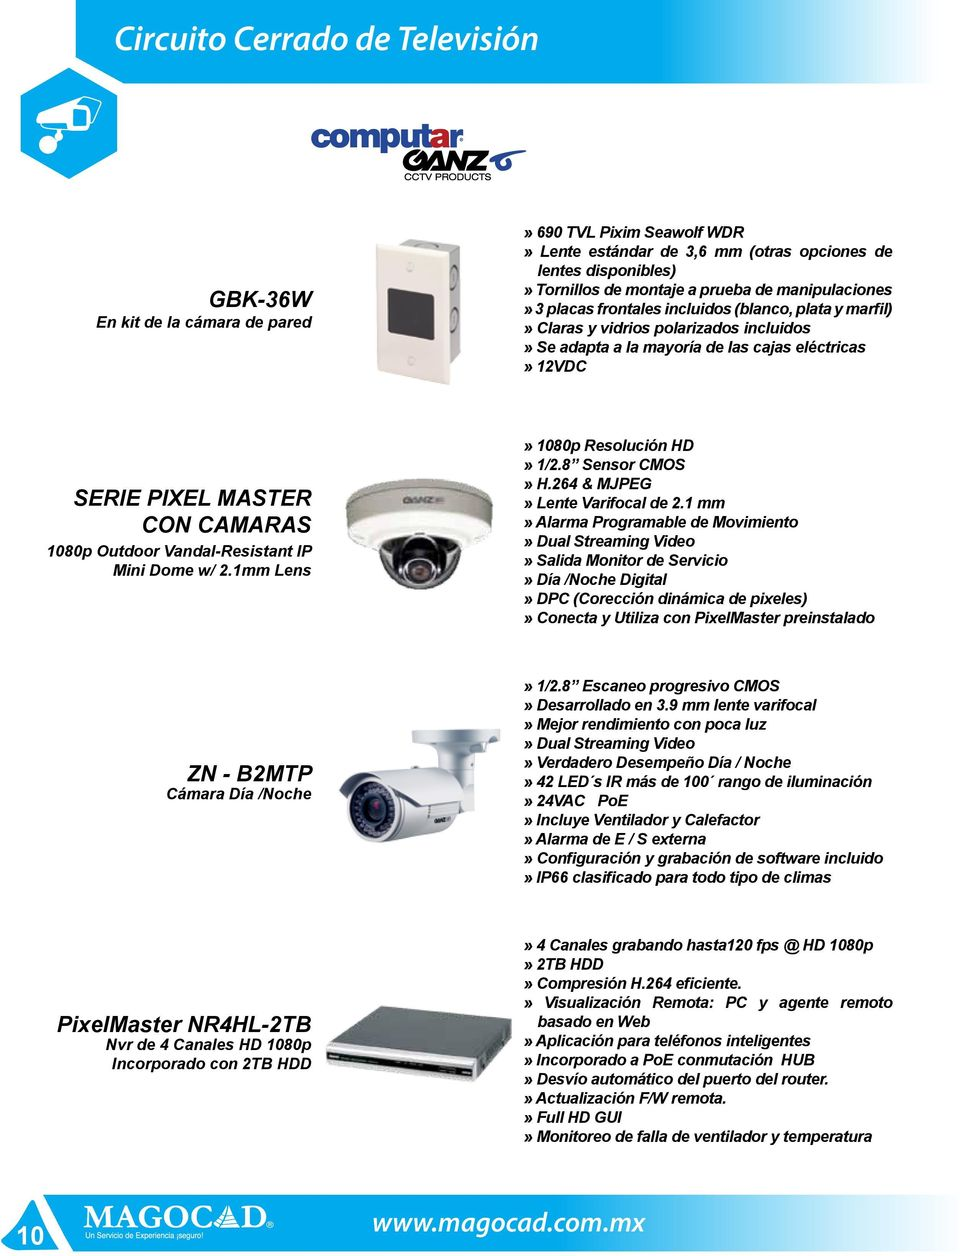 1080p Outdoor Vandal-Resistant IP Mini Dome w/ 2.1mm Lens» 1080p Resolución HD» 1/2.8 Sensor CMOS» H.264 & MJPEG» Lente Varifocal de 2.